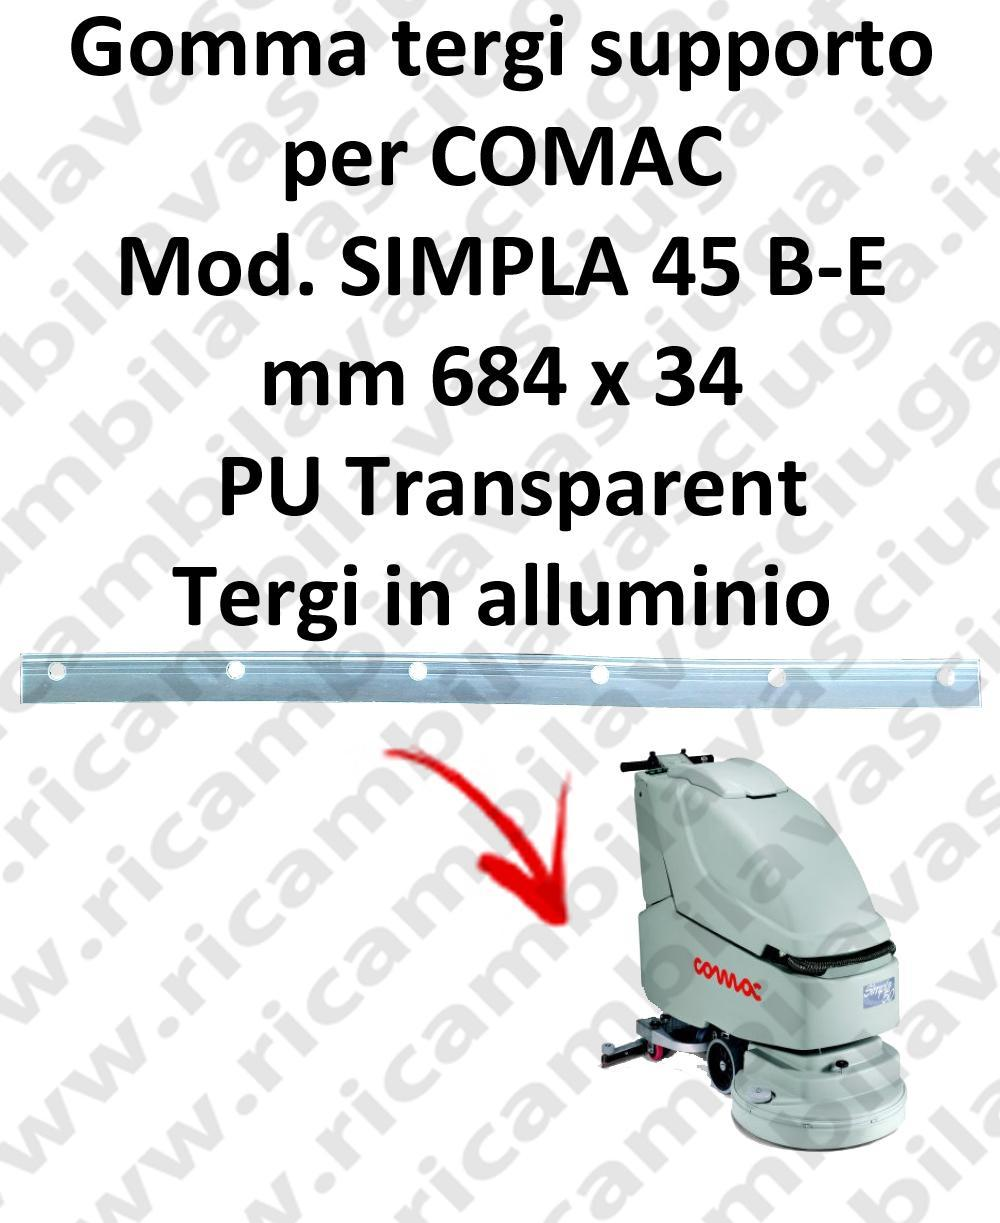 SIMPLA 45 B- E Support Squeegee rubber for COMAC accessories, reaplacement, spare parts,o scrubber dryer squeegee